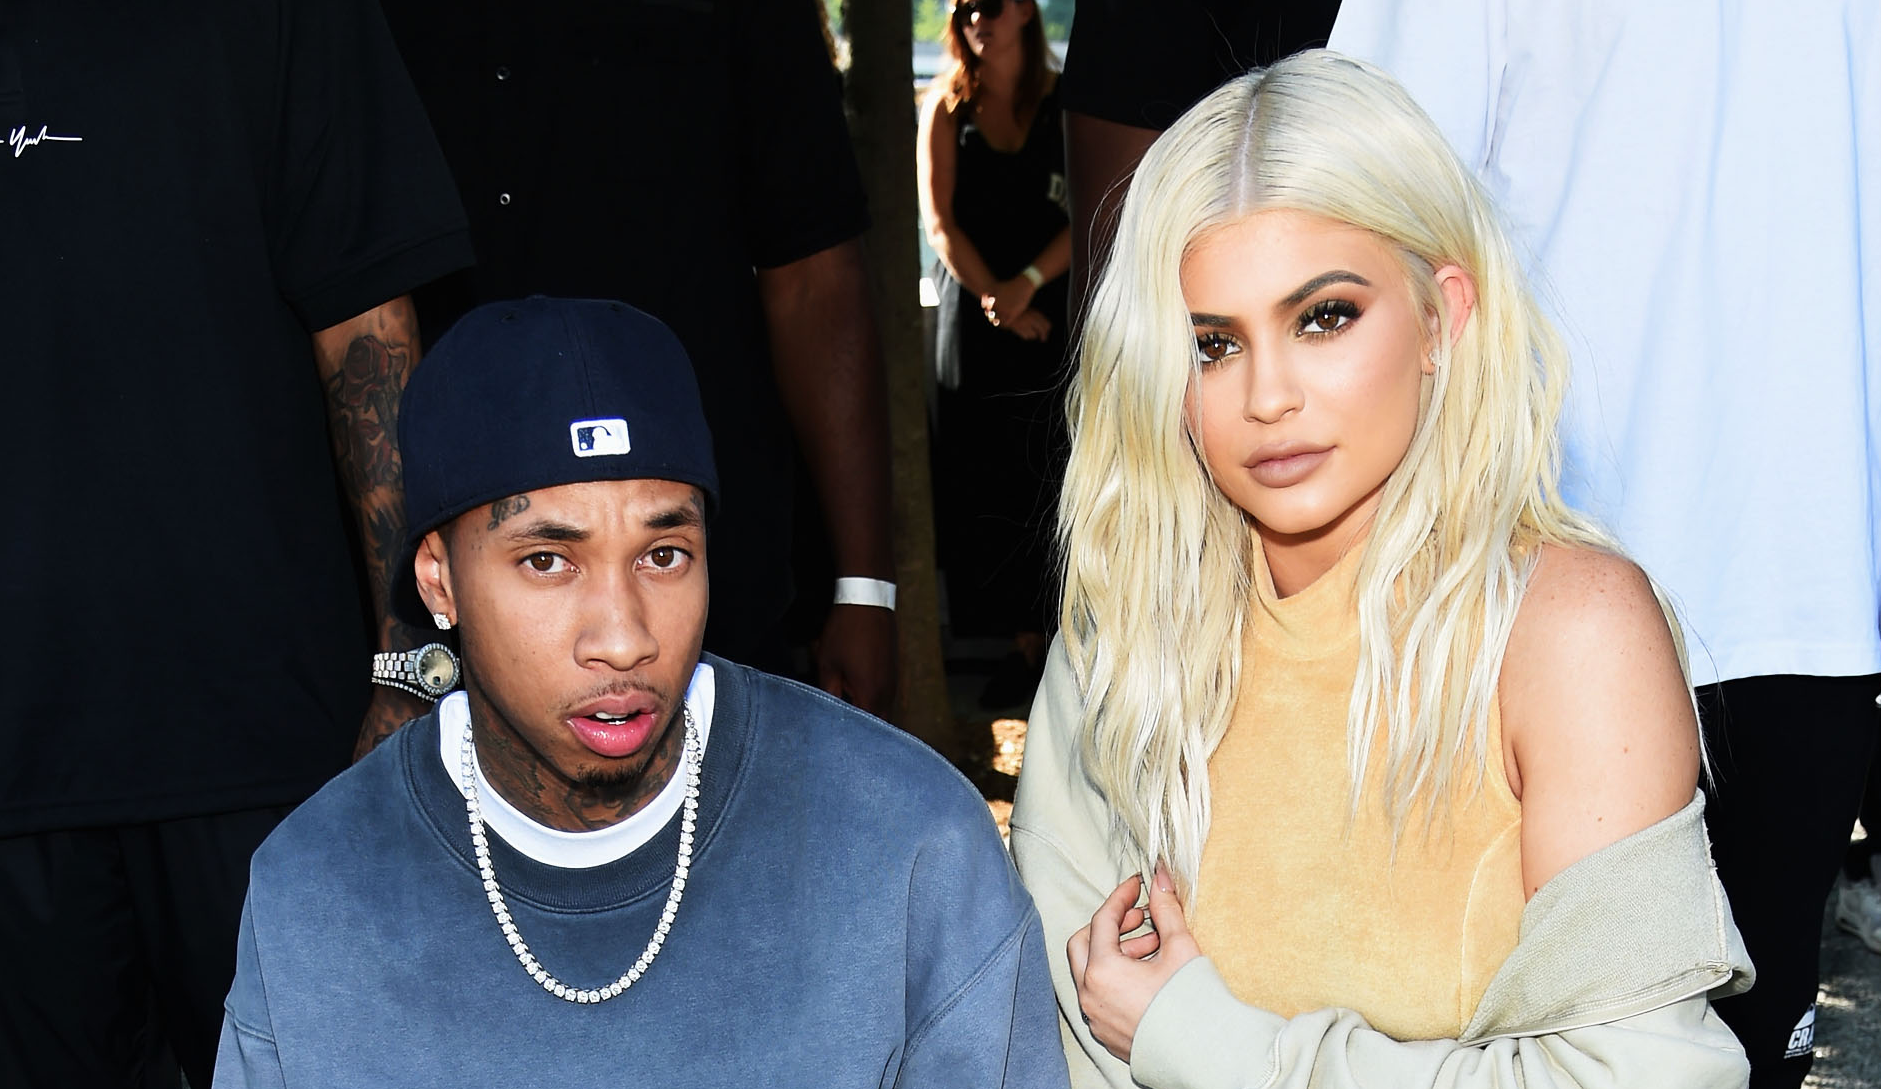 Kylie Jenner Is Wearing a Wedding Ring—Did She and Tyga Get Married?